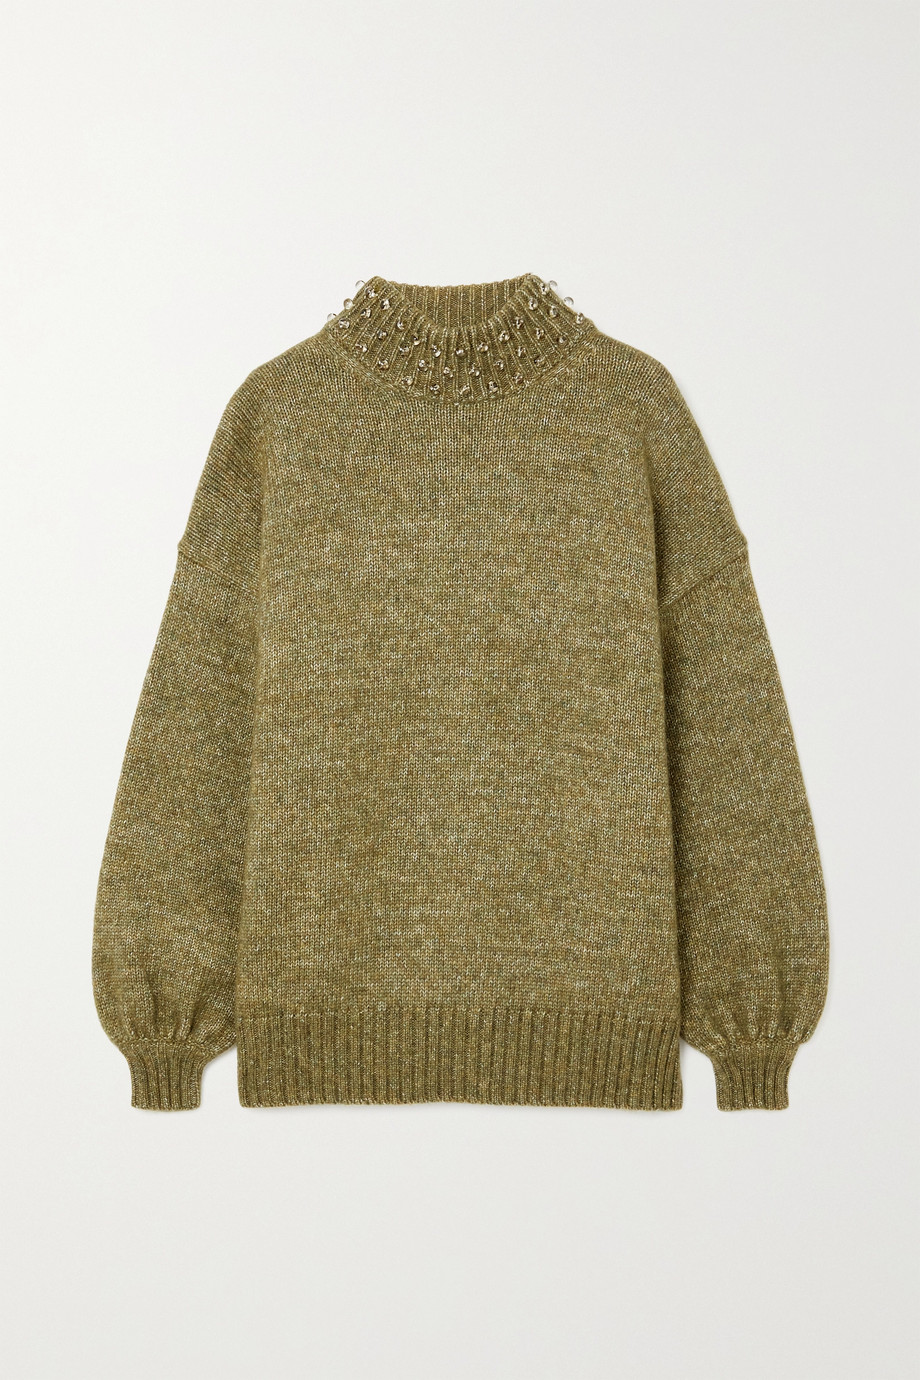 SEE BY CHLOÉ Oversized embellished wool and cotton-blend sweater